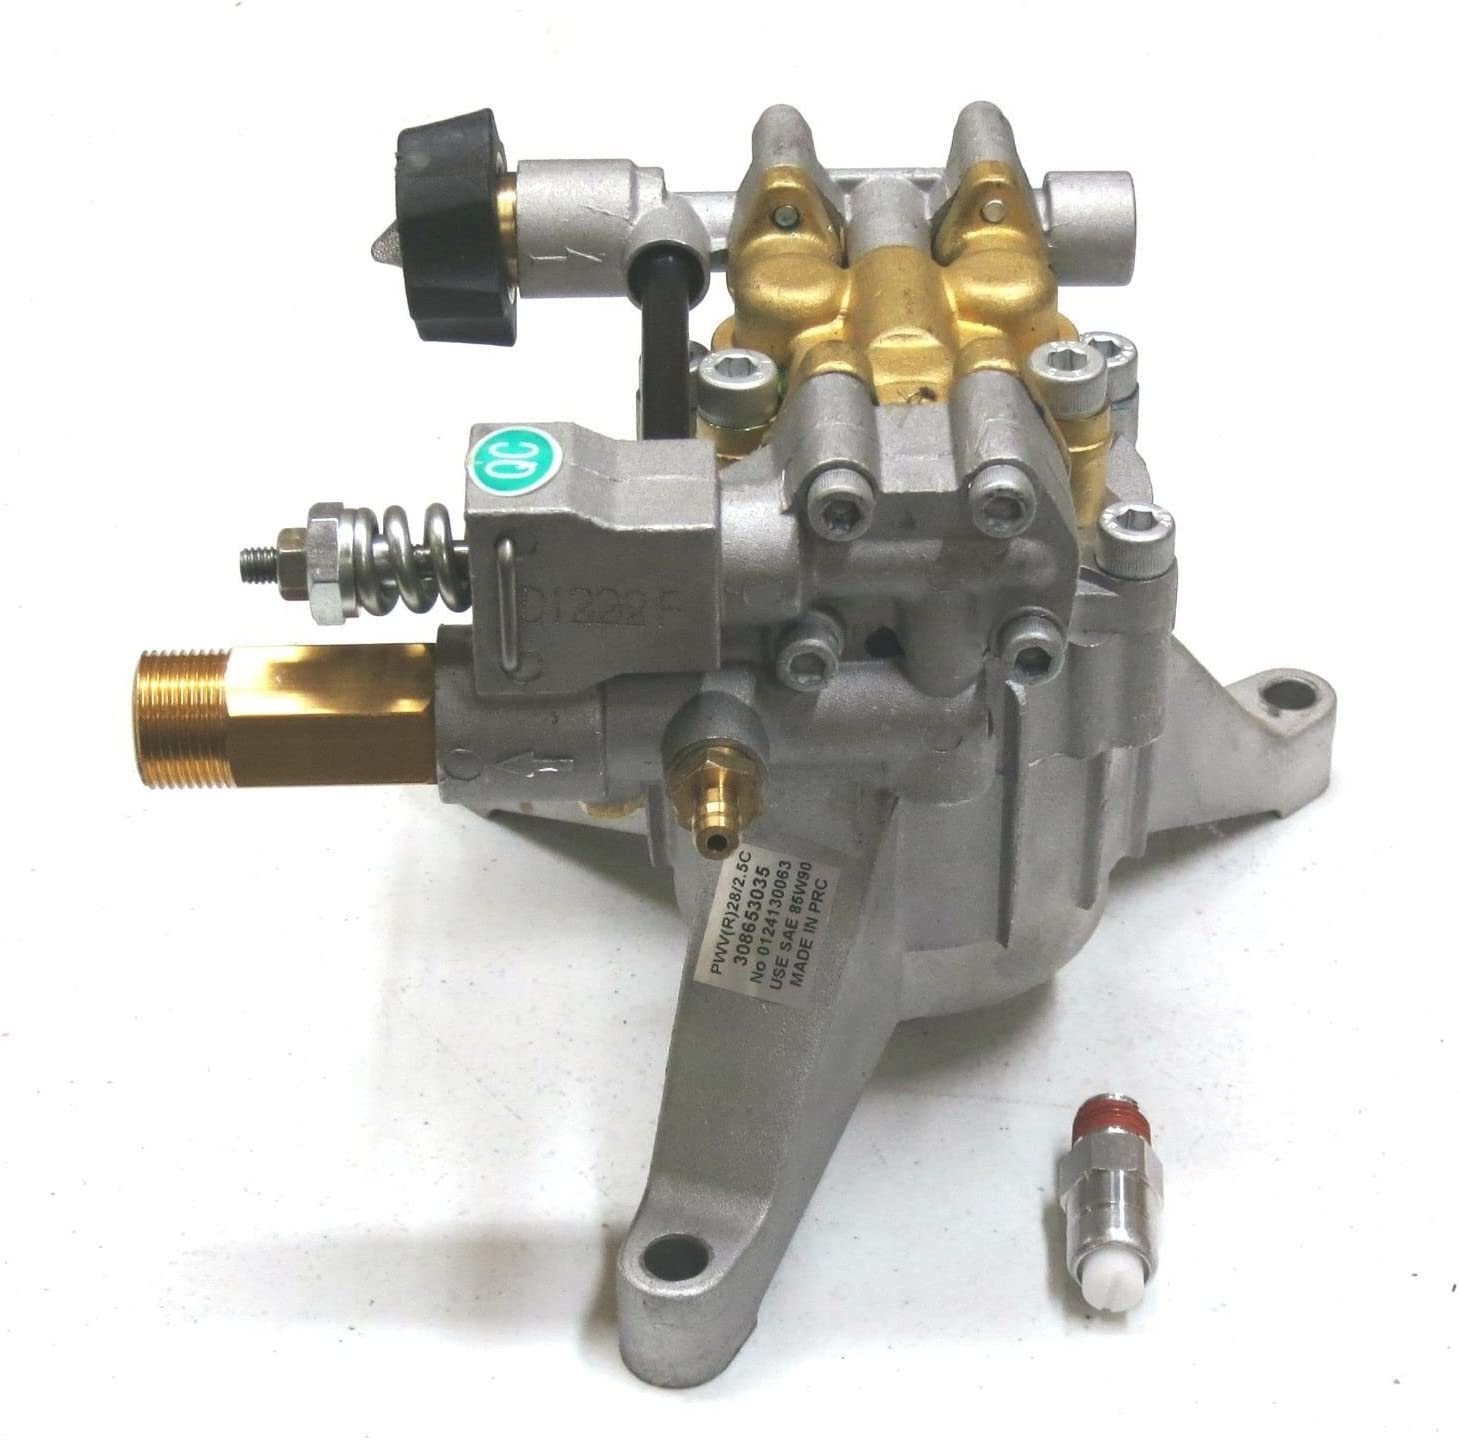 3100 PSI Upgraded POWER PRESSURE WASHER WATER PUMP Sears  580676641 580761010